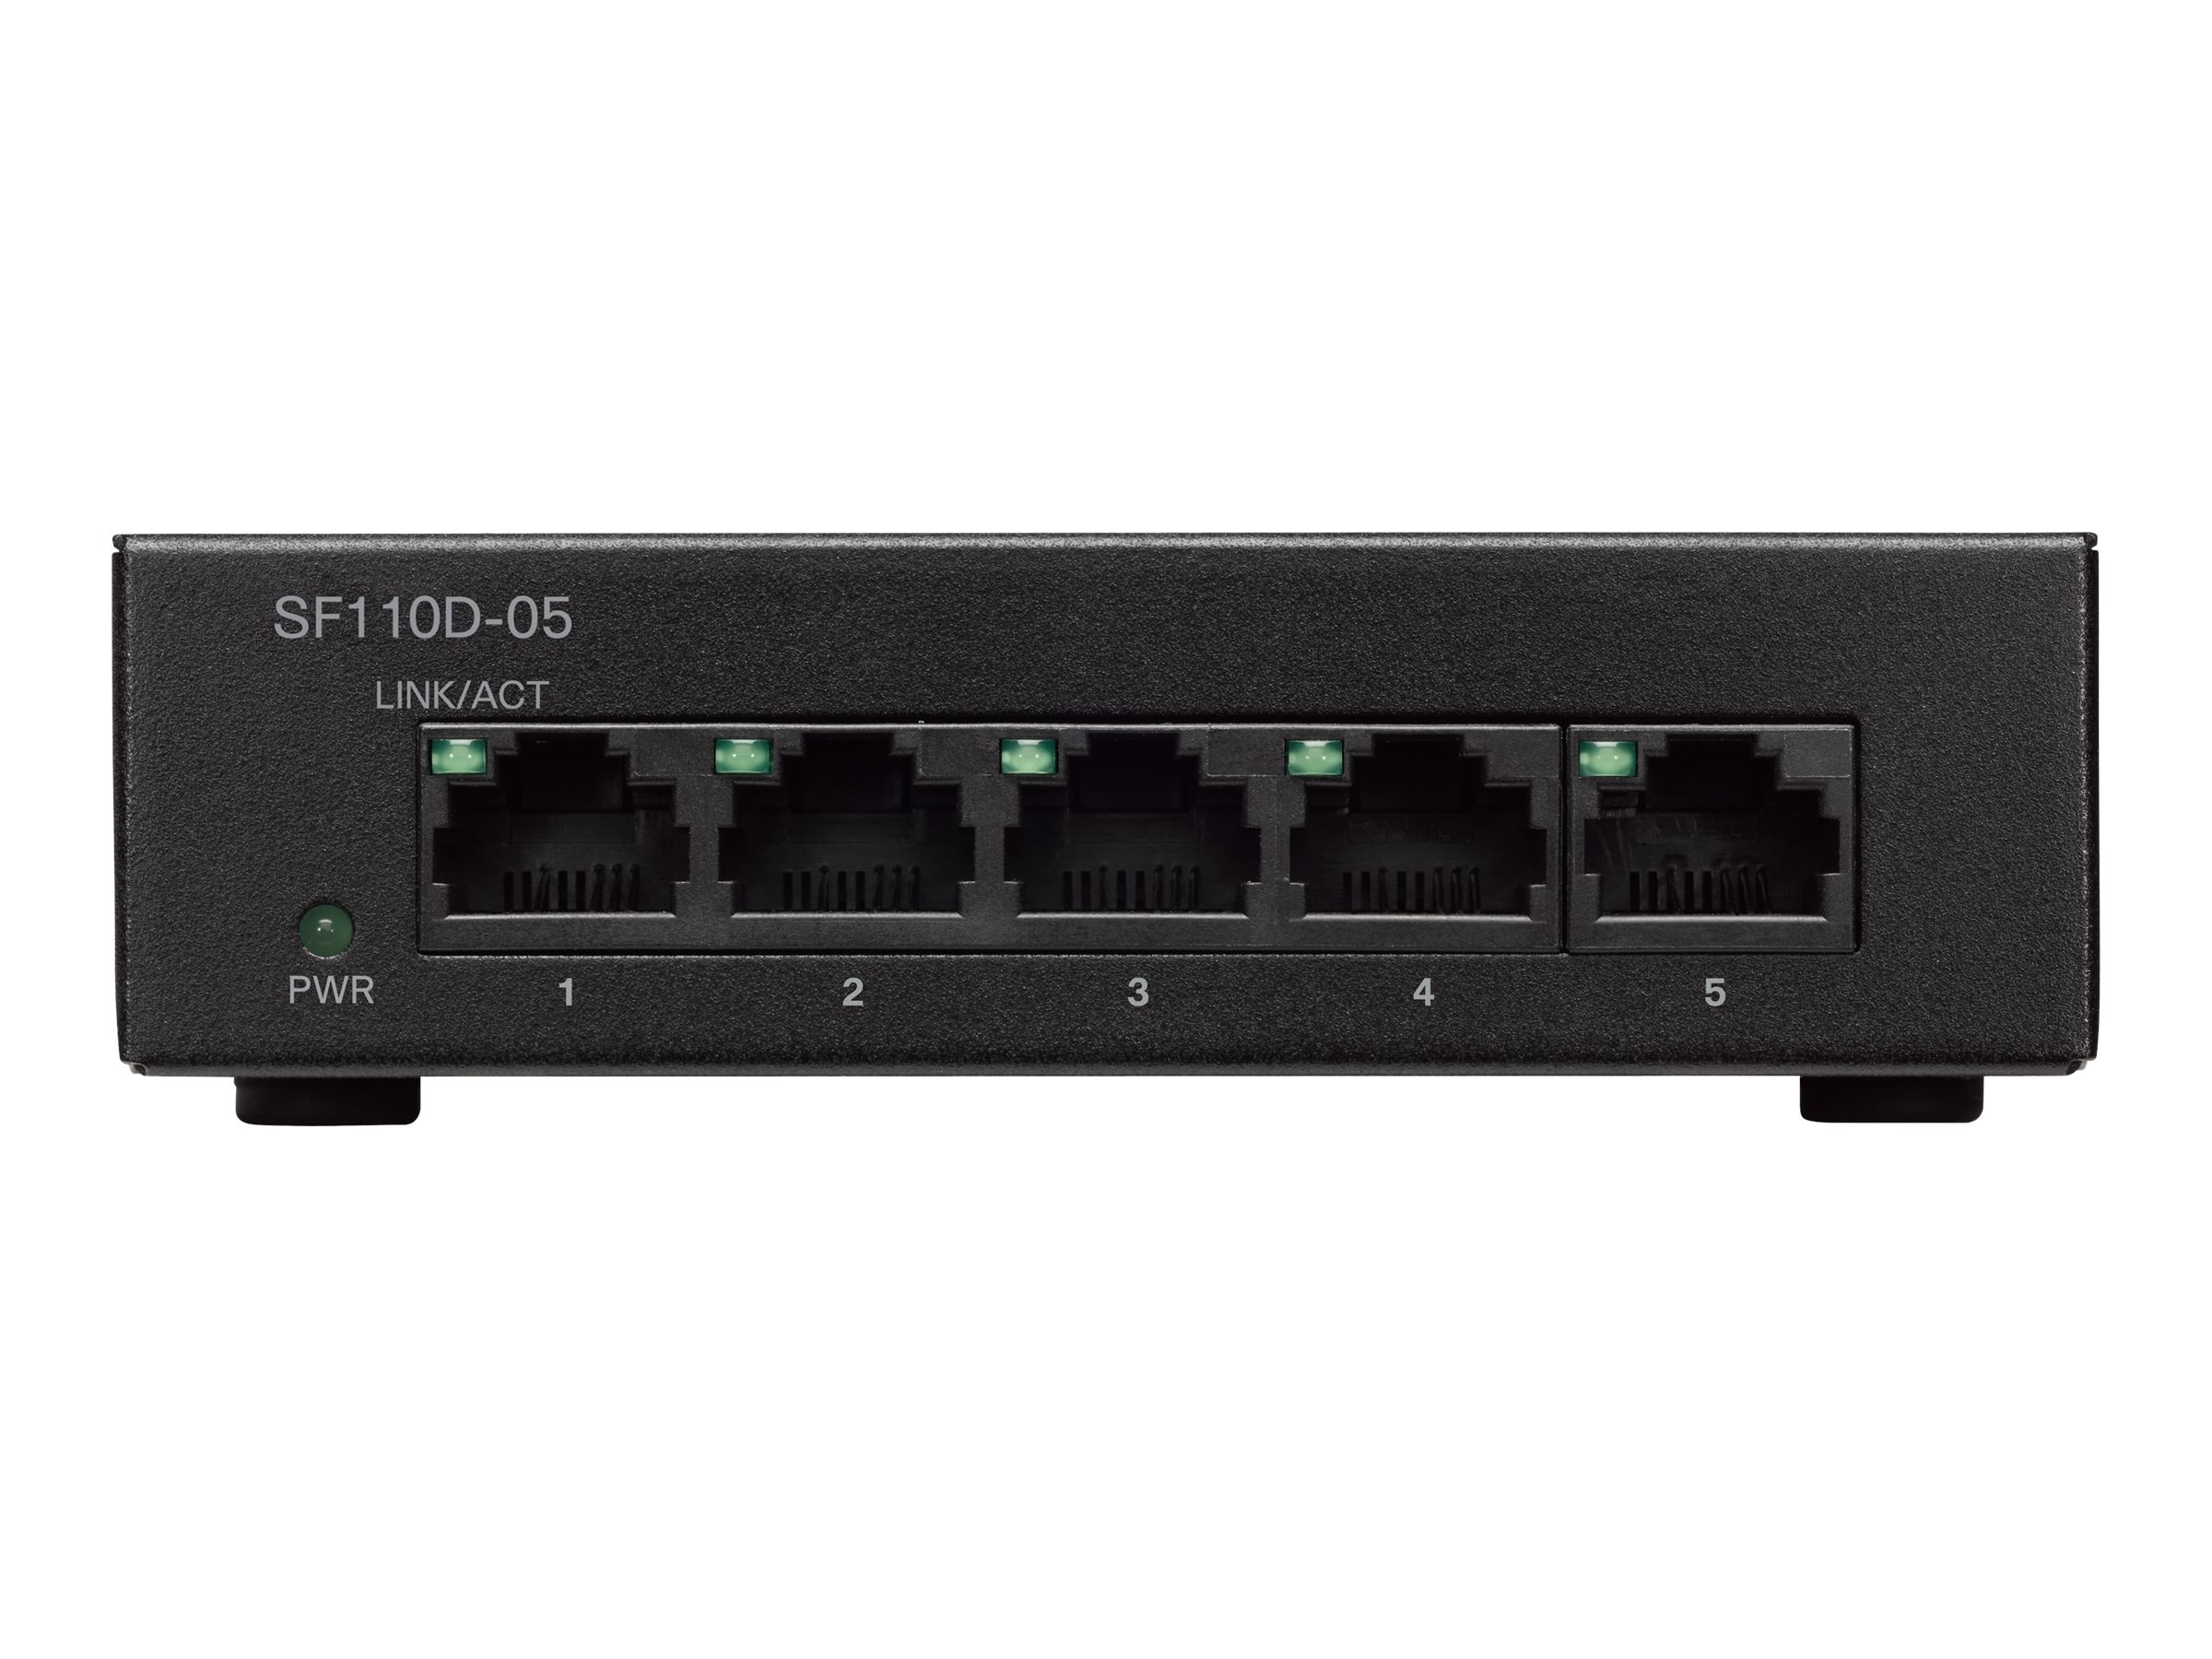 Cisco SF110D-05-NA Image 1